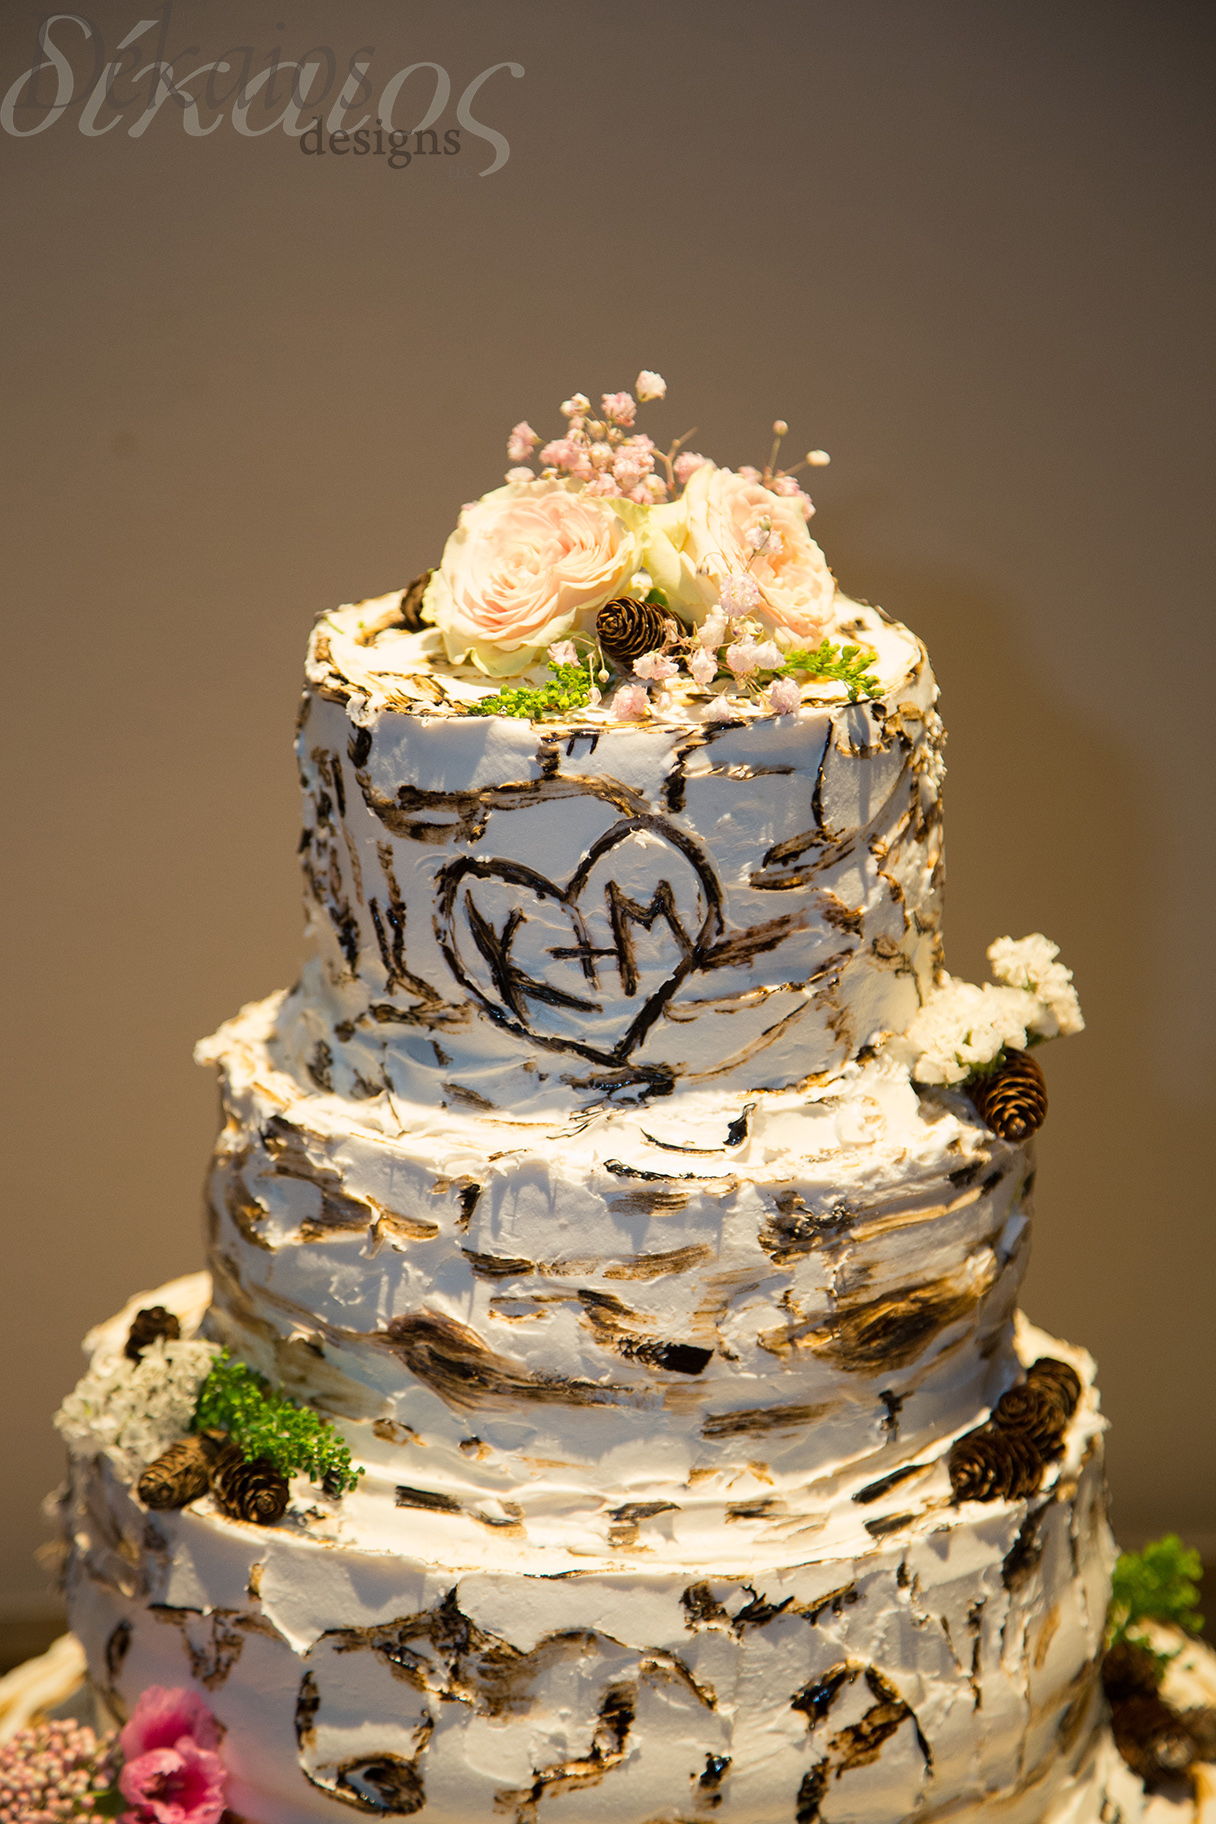 A friend of the bride made this beautiful birch tree cake with their initials carved in.